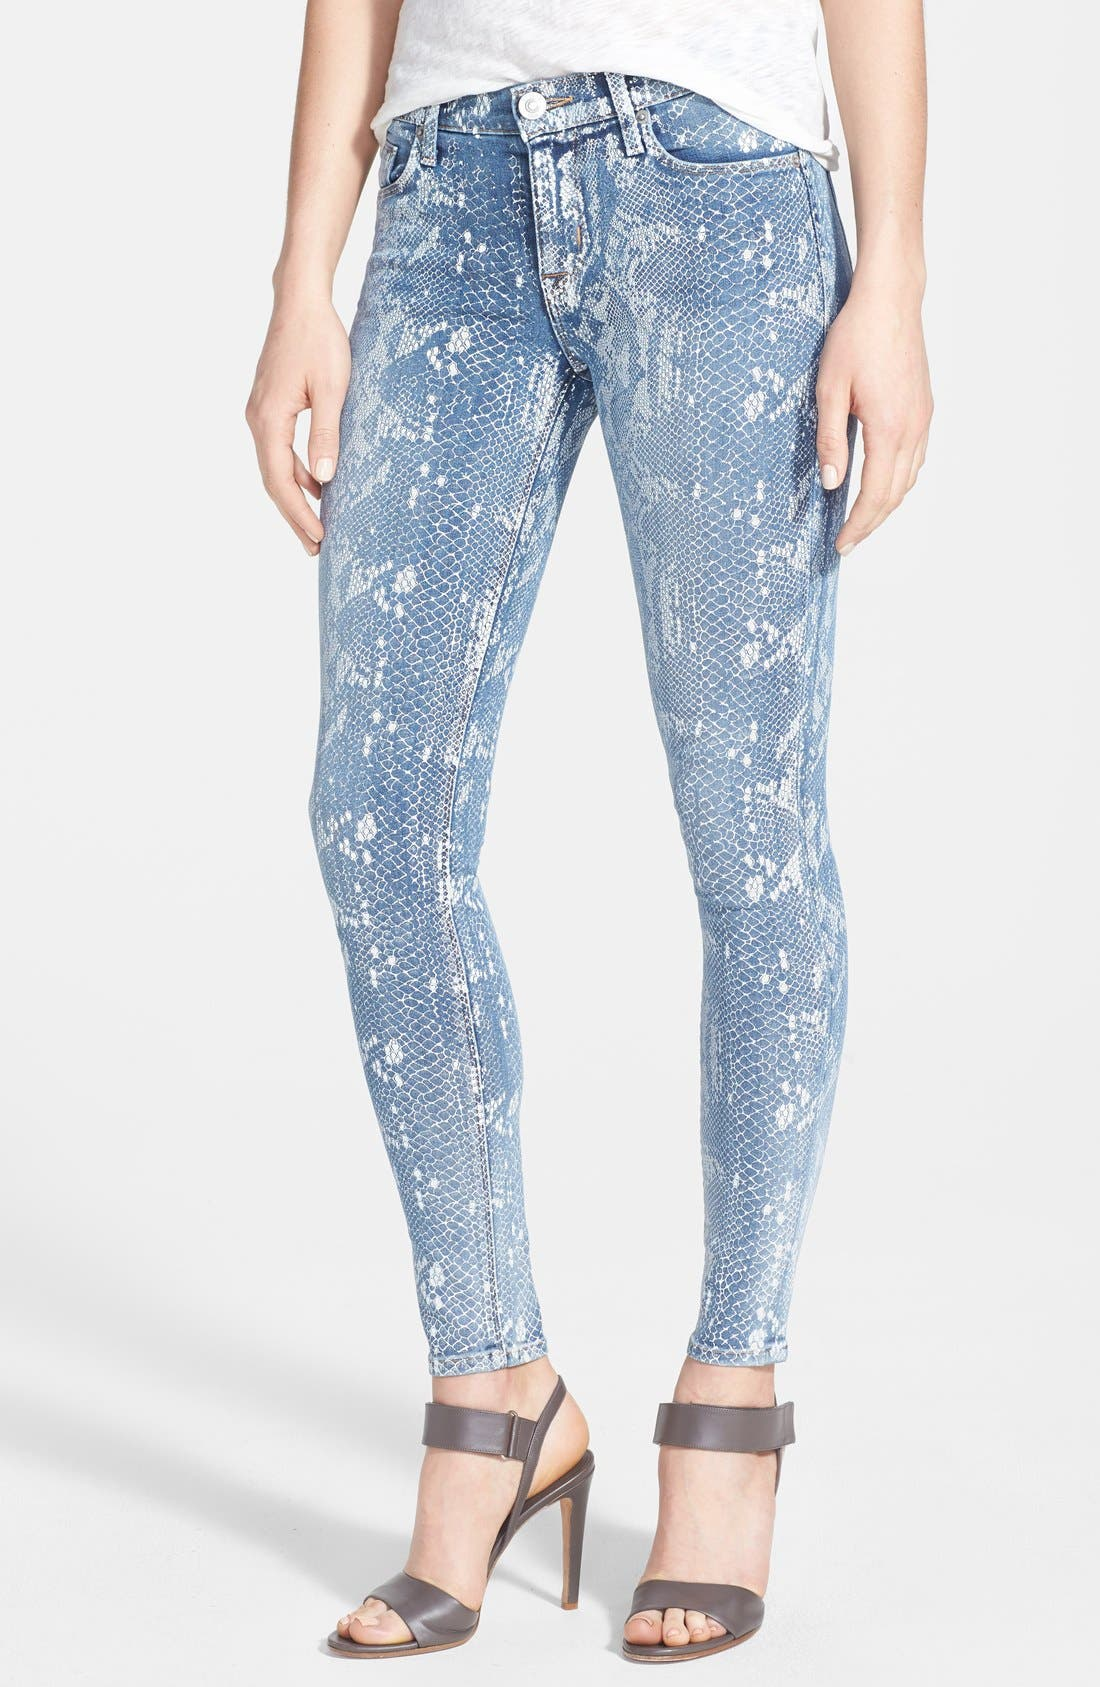 Alternate Image 1 Selected - Hudson Jeans 'Nico' Print Skinny Stretch Jeans (Copperhead)